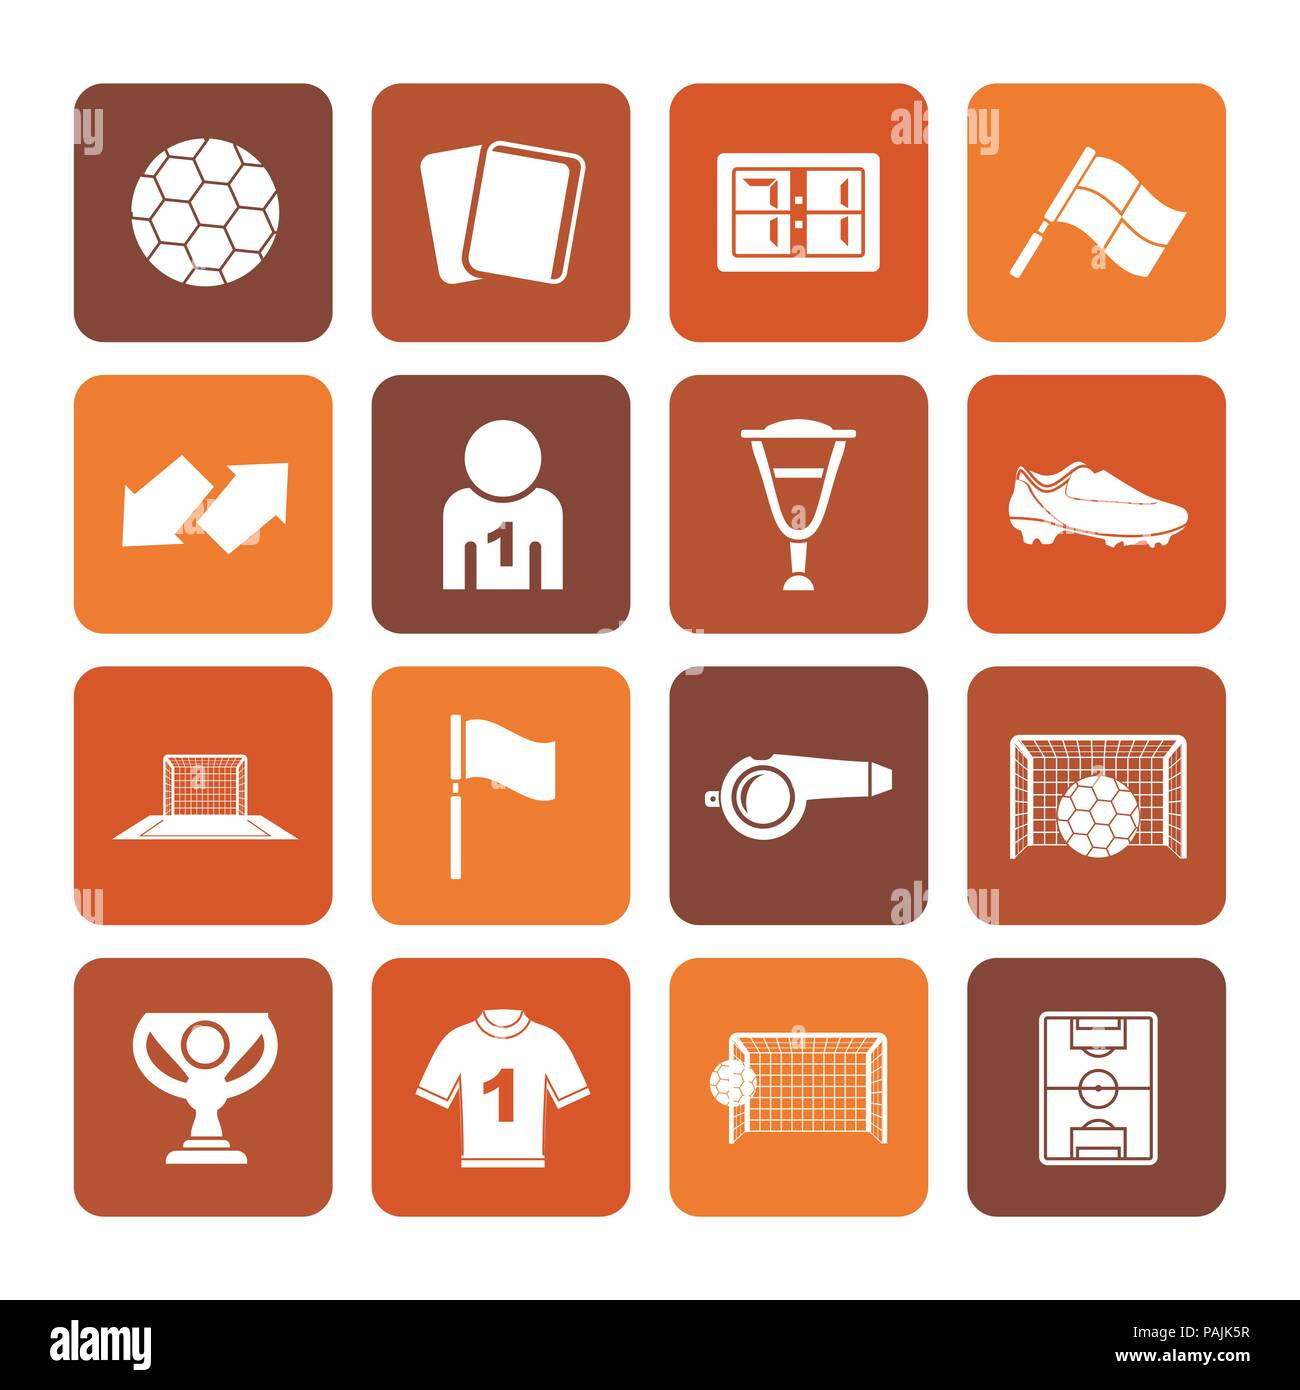 Flat football, soccer and sport icons - vector icon set Stock Vector